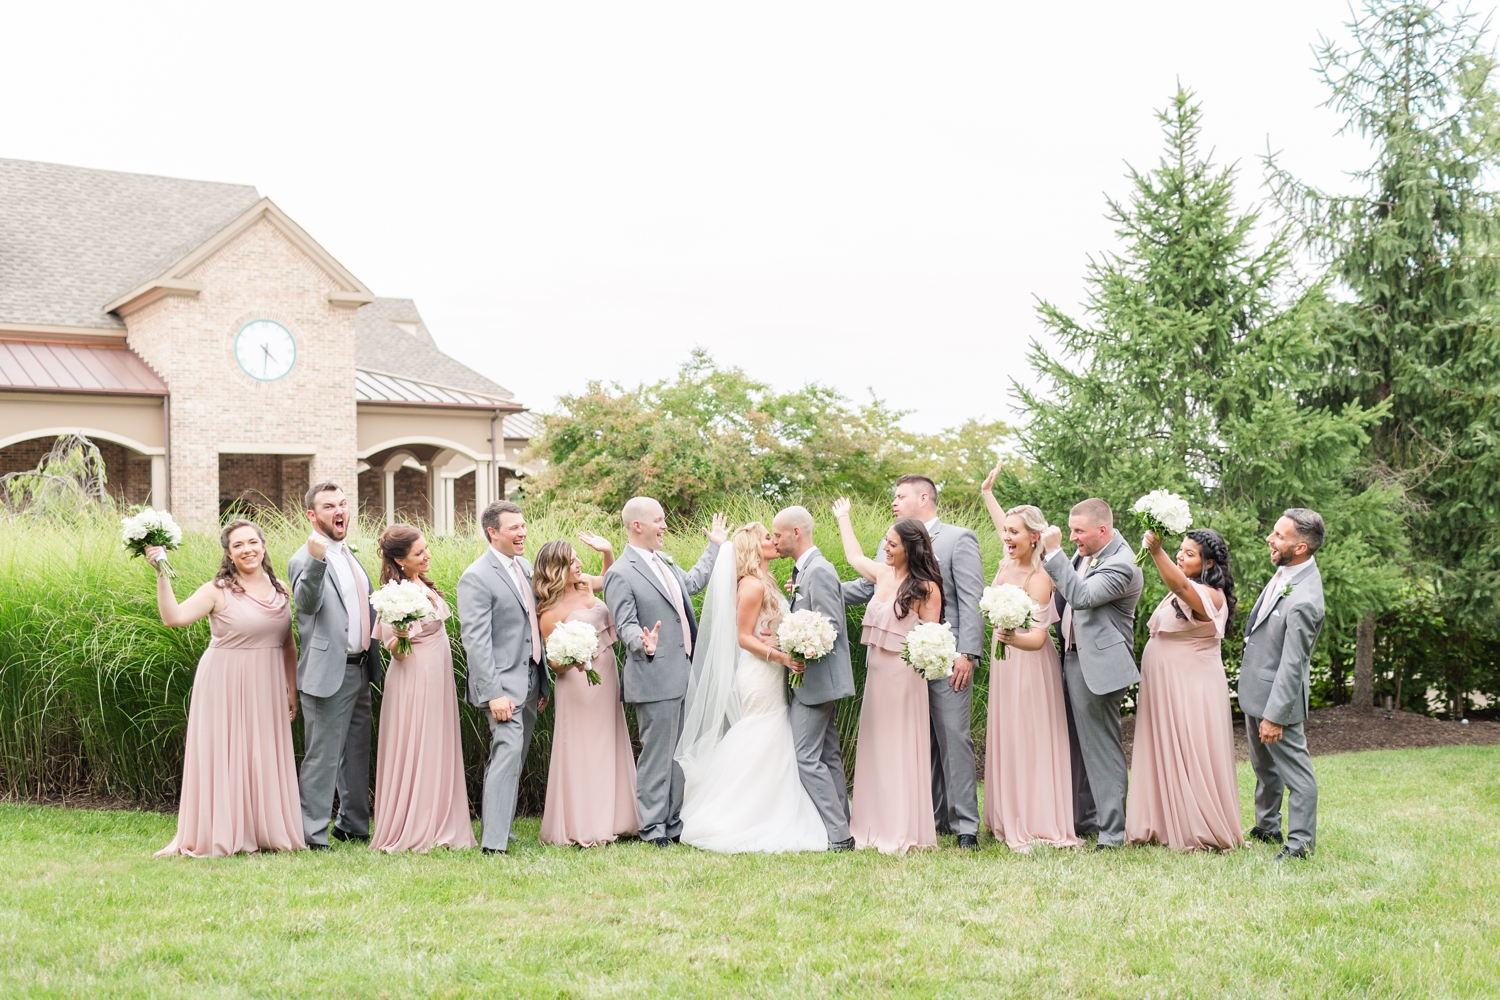 WOOD WEDDING HIGHLIGHTS-240_lansdowne-resort-wedding-virginia-wedding-photographer-anna-grace-photography-photo.jpg